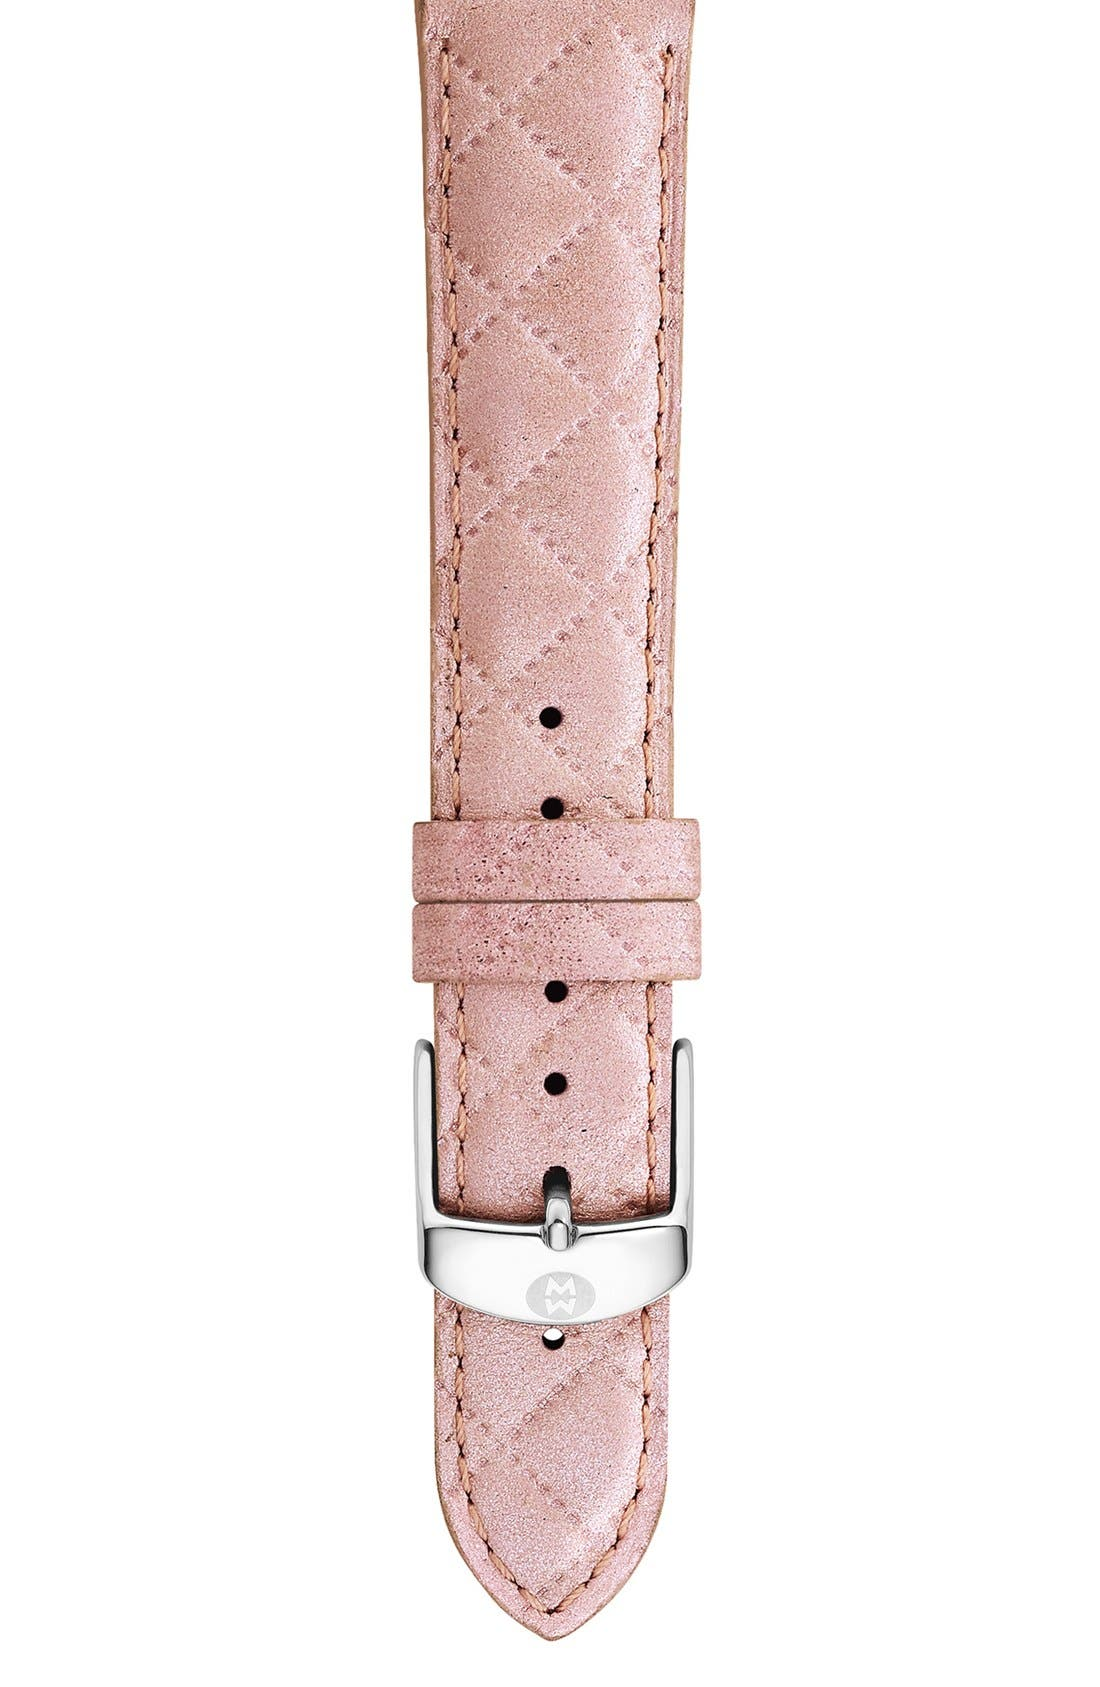 18mm Quilted Leather Watch Strap,                             Main thumbnail 1, color,                             Pearl Pink